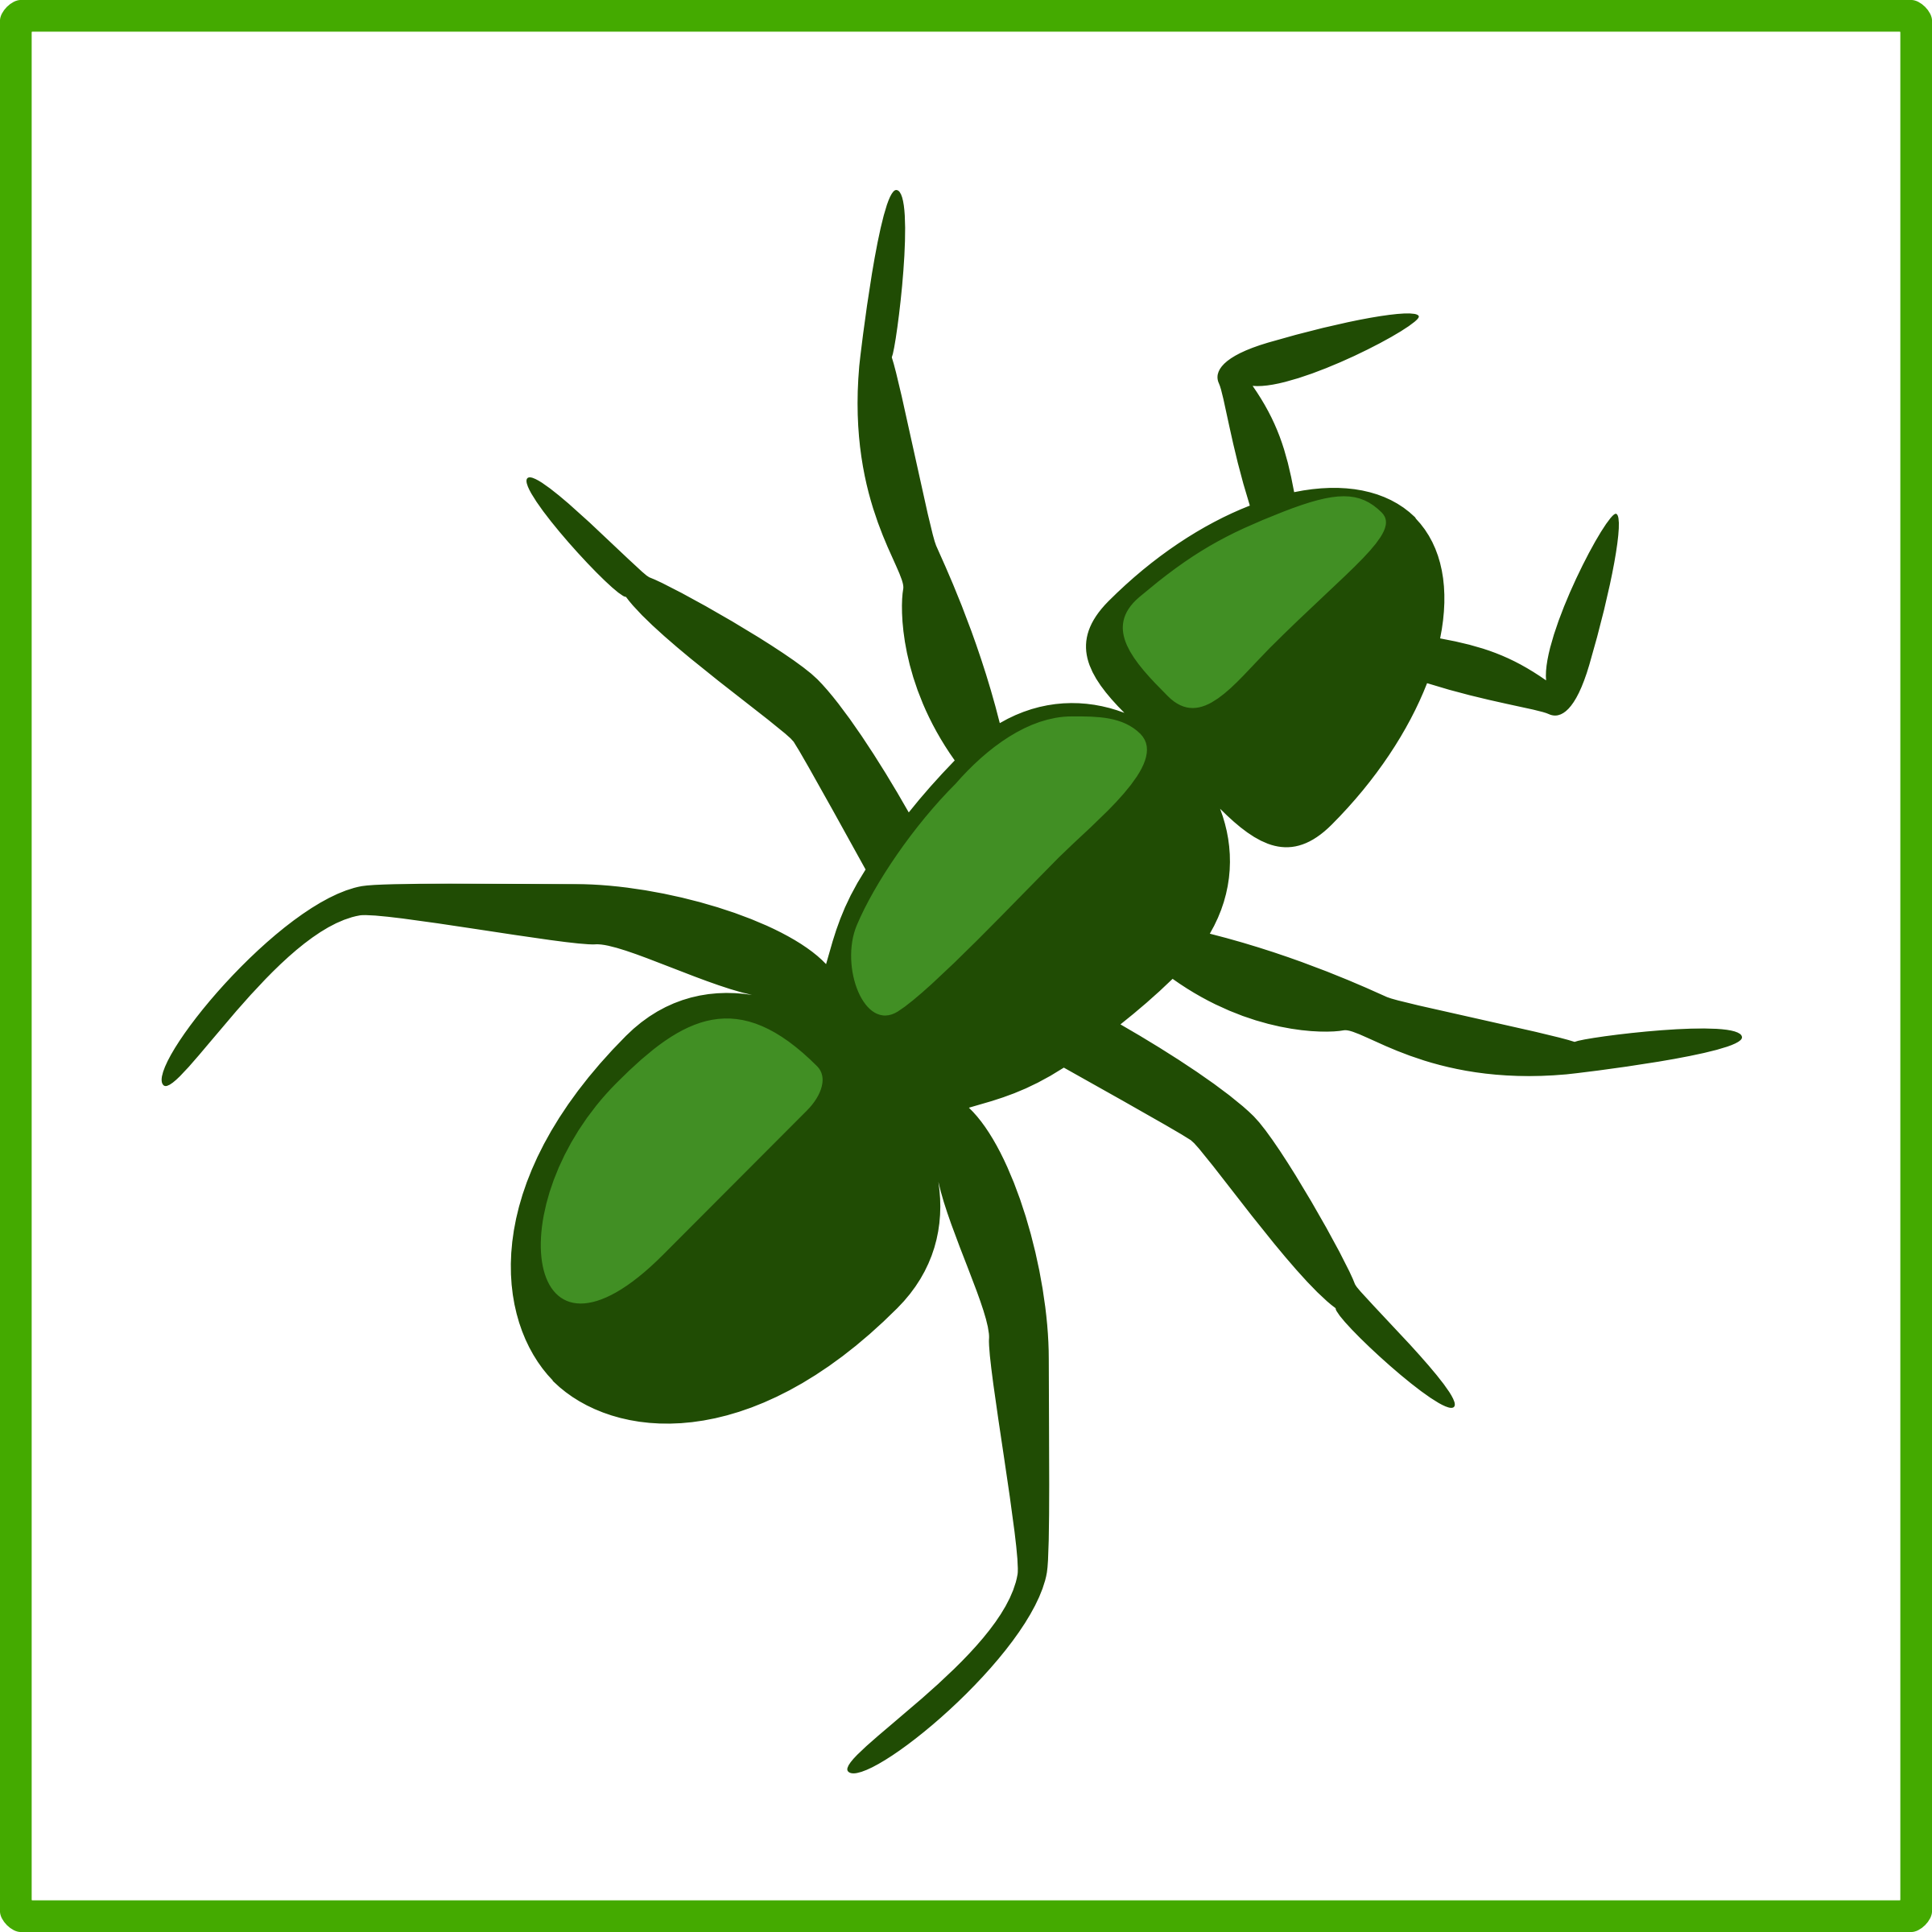 freeuse library Ants working together clipart. Eco green ant icon